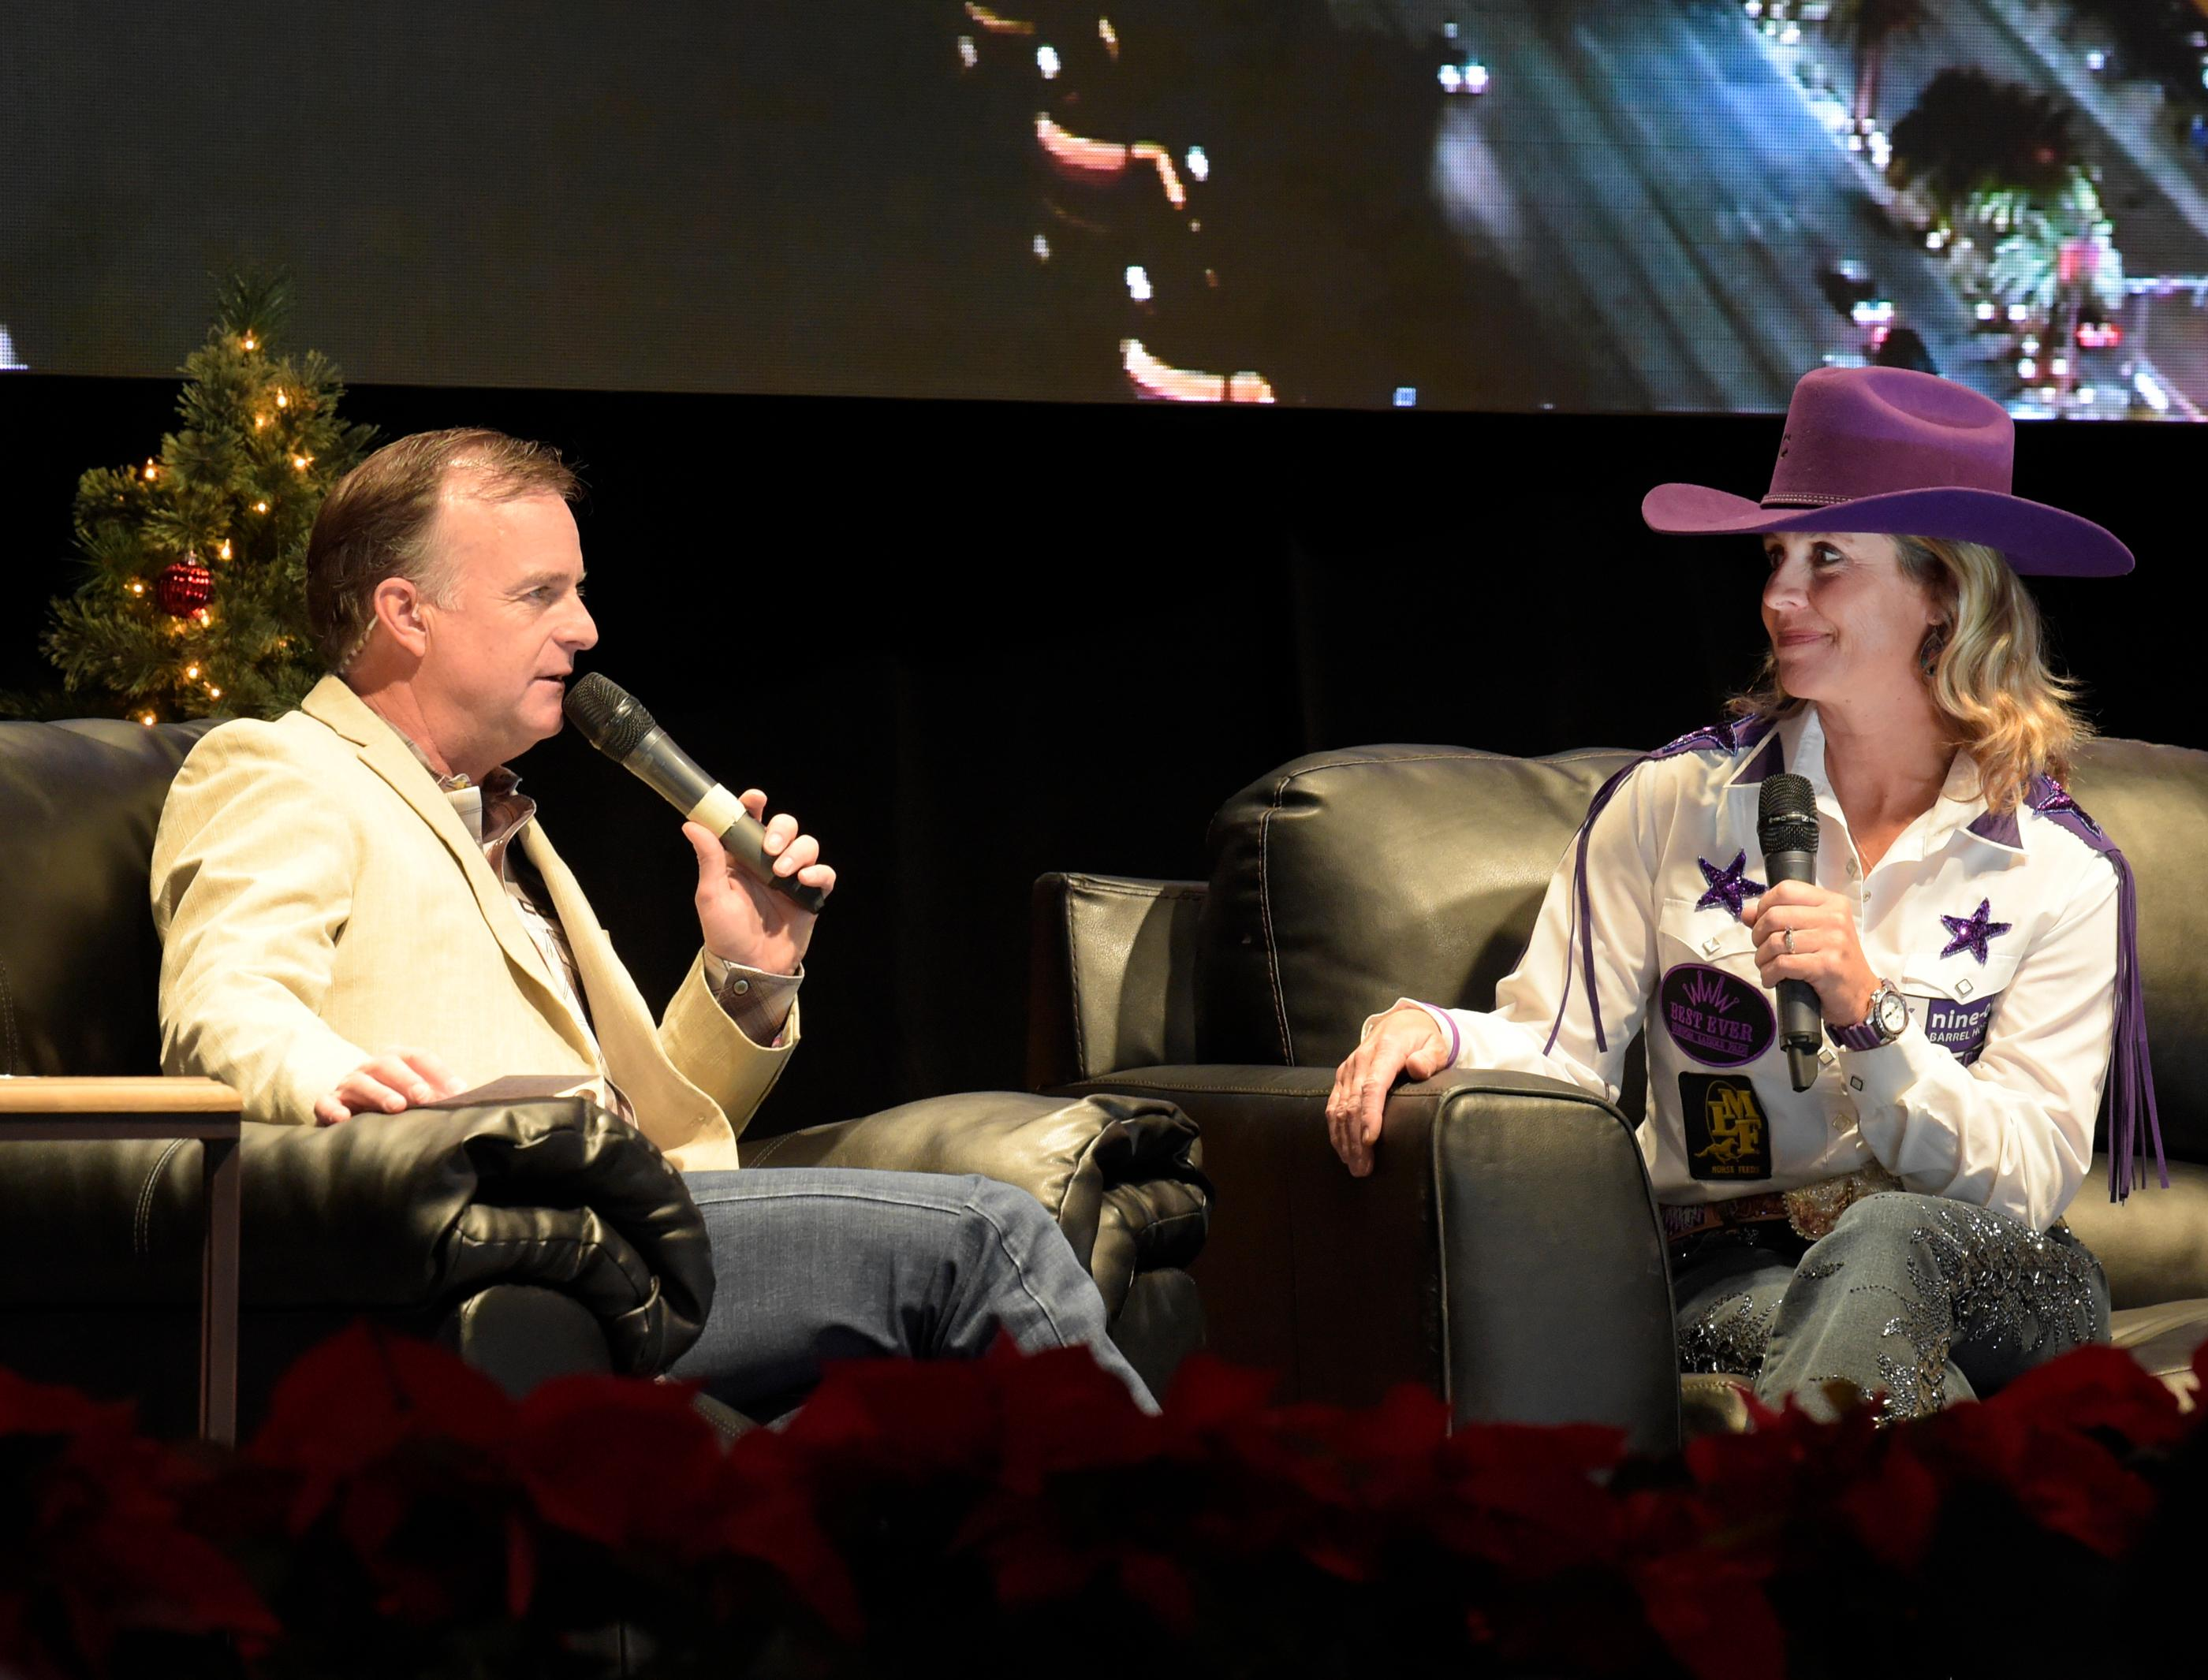 """Outside the Barrel"" with Flint Rasmussen as he interviews Barrel Racer and Veterinarian Cathy Grahams on the Rodeo Live Stage during Cowboy Christmas at the Las Vegas Convention Center. Sunday December 10, 2017. [Glenn Pinkerton/Las Vegas News Bureau]"